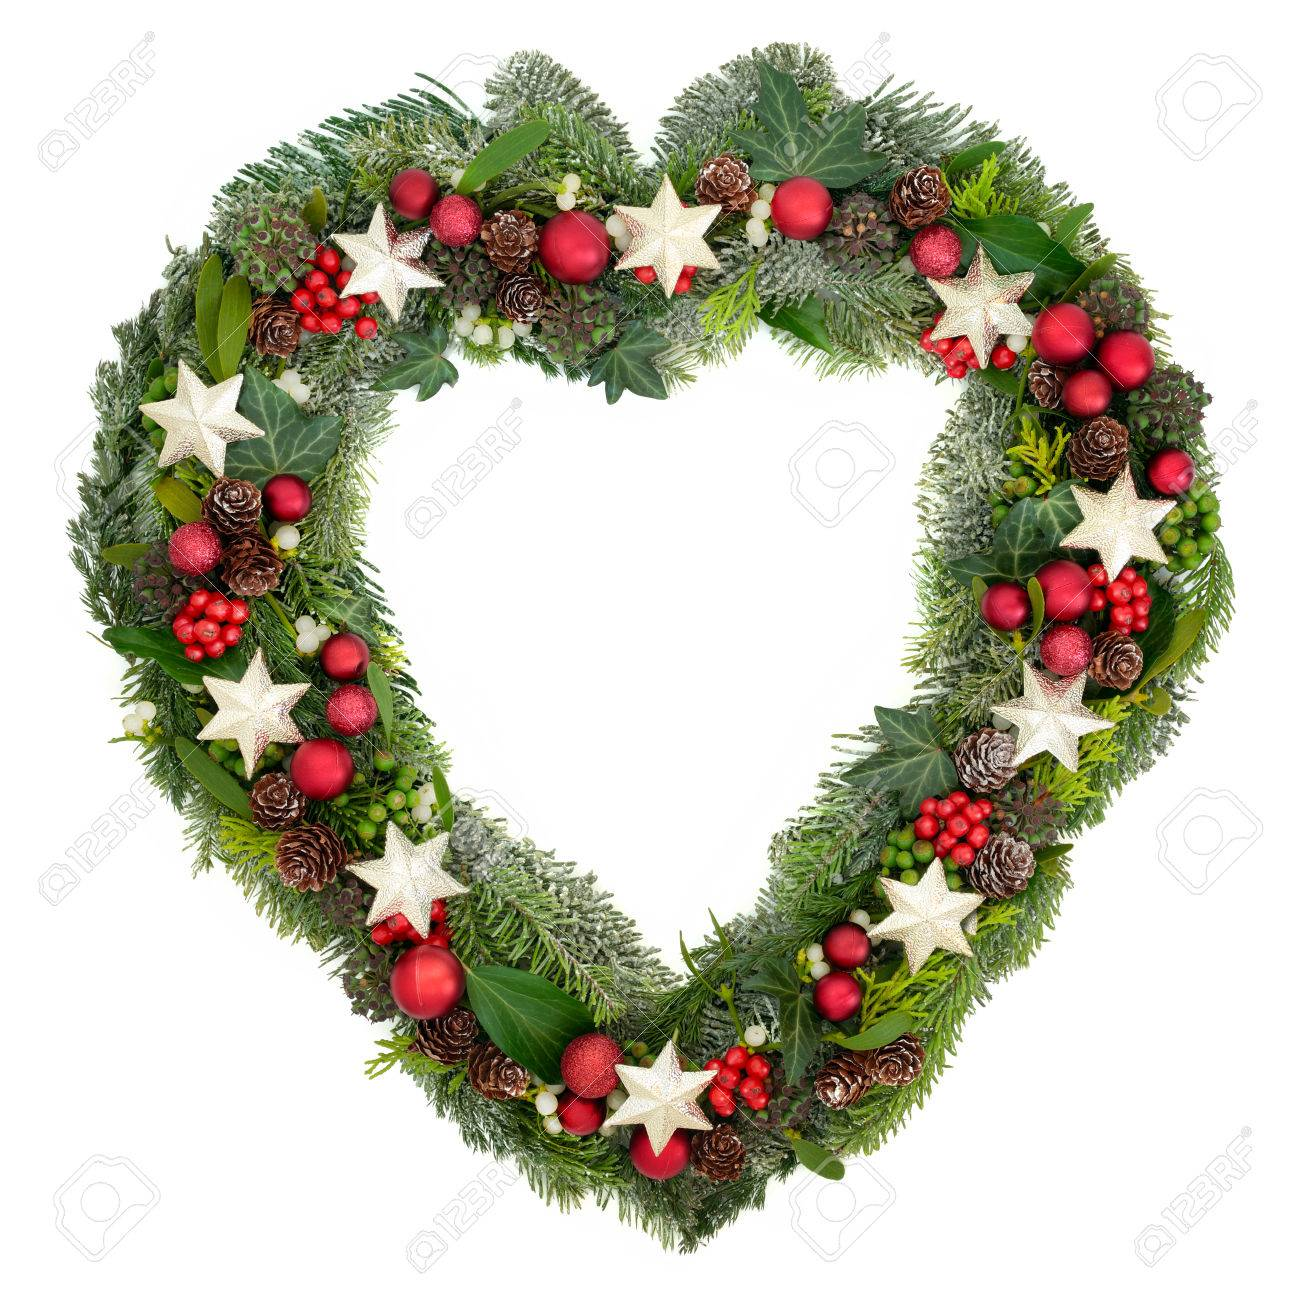 Christmas Heart Wreath.Heart Shaped Christmas Wreath With Star And Bauble Decorations